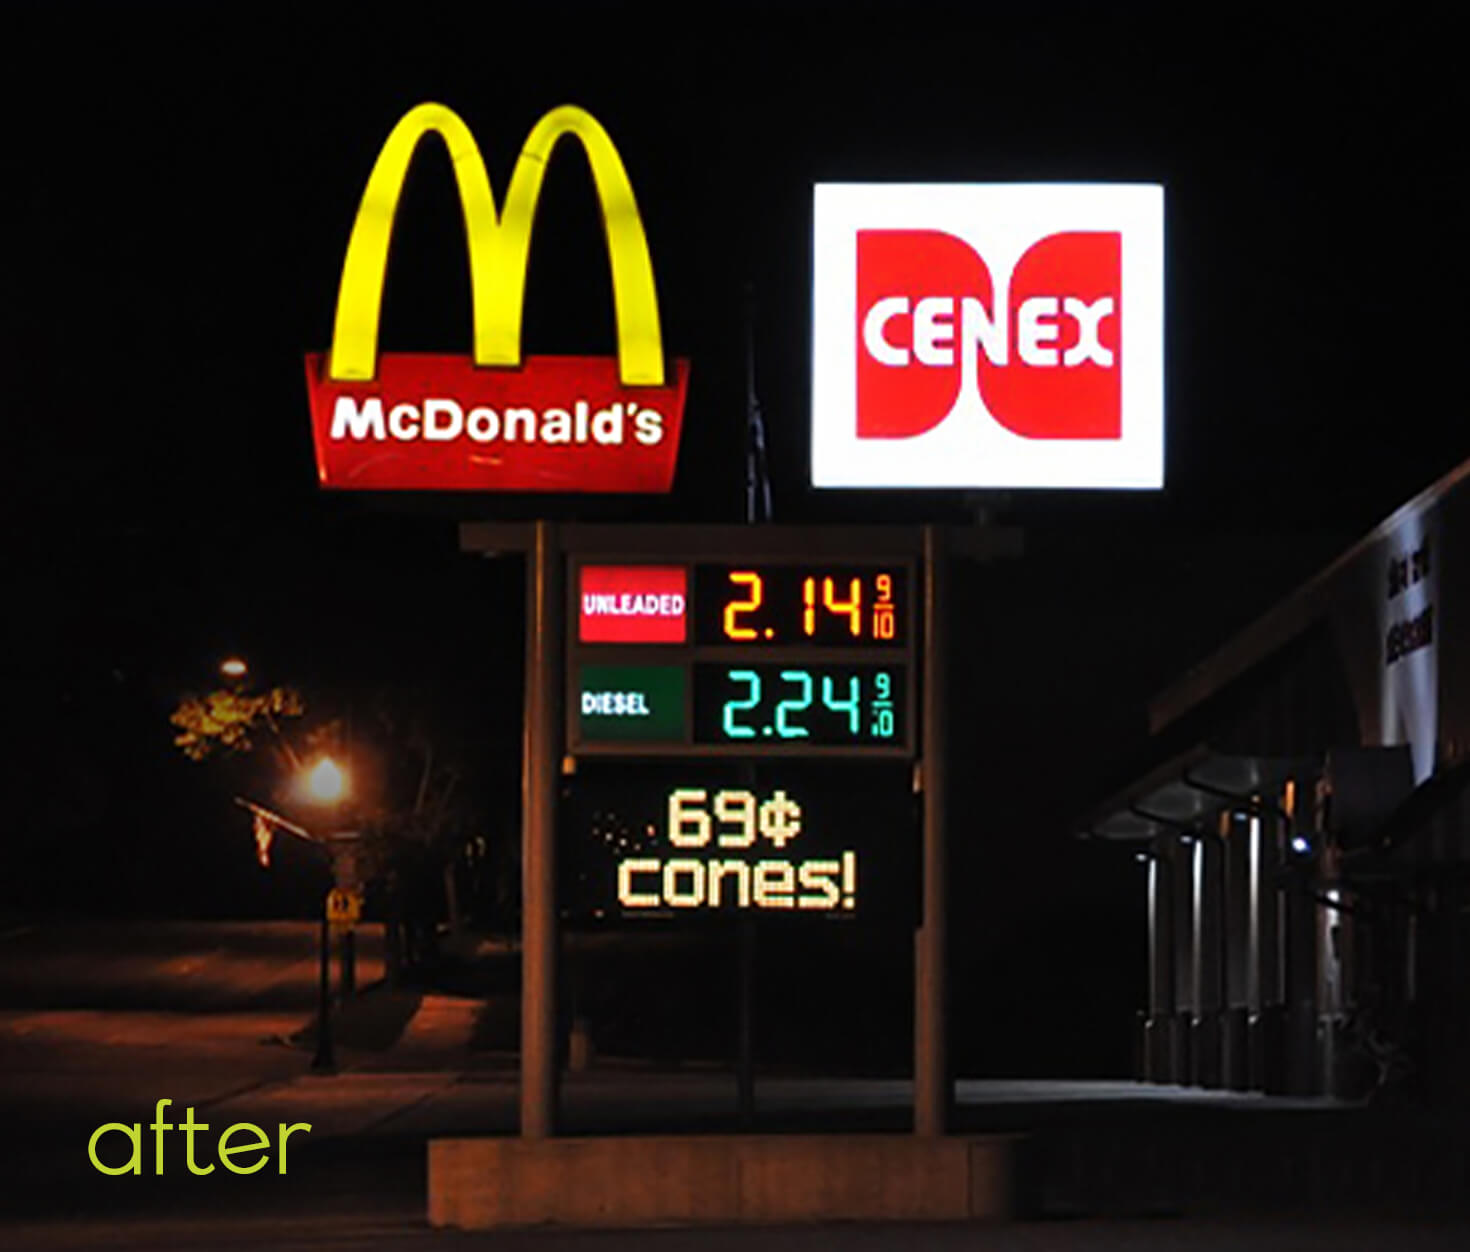 McDonalds and Cenex Exterior sign after lighting conversion